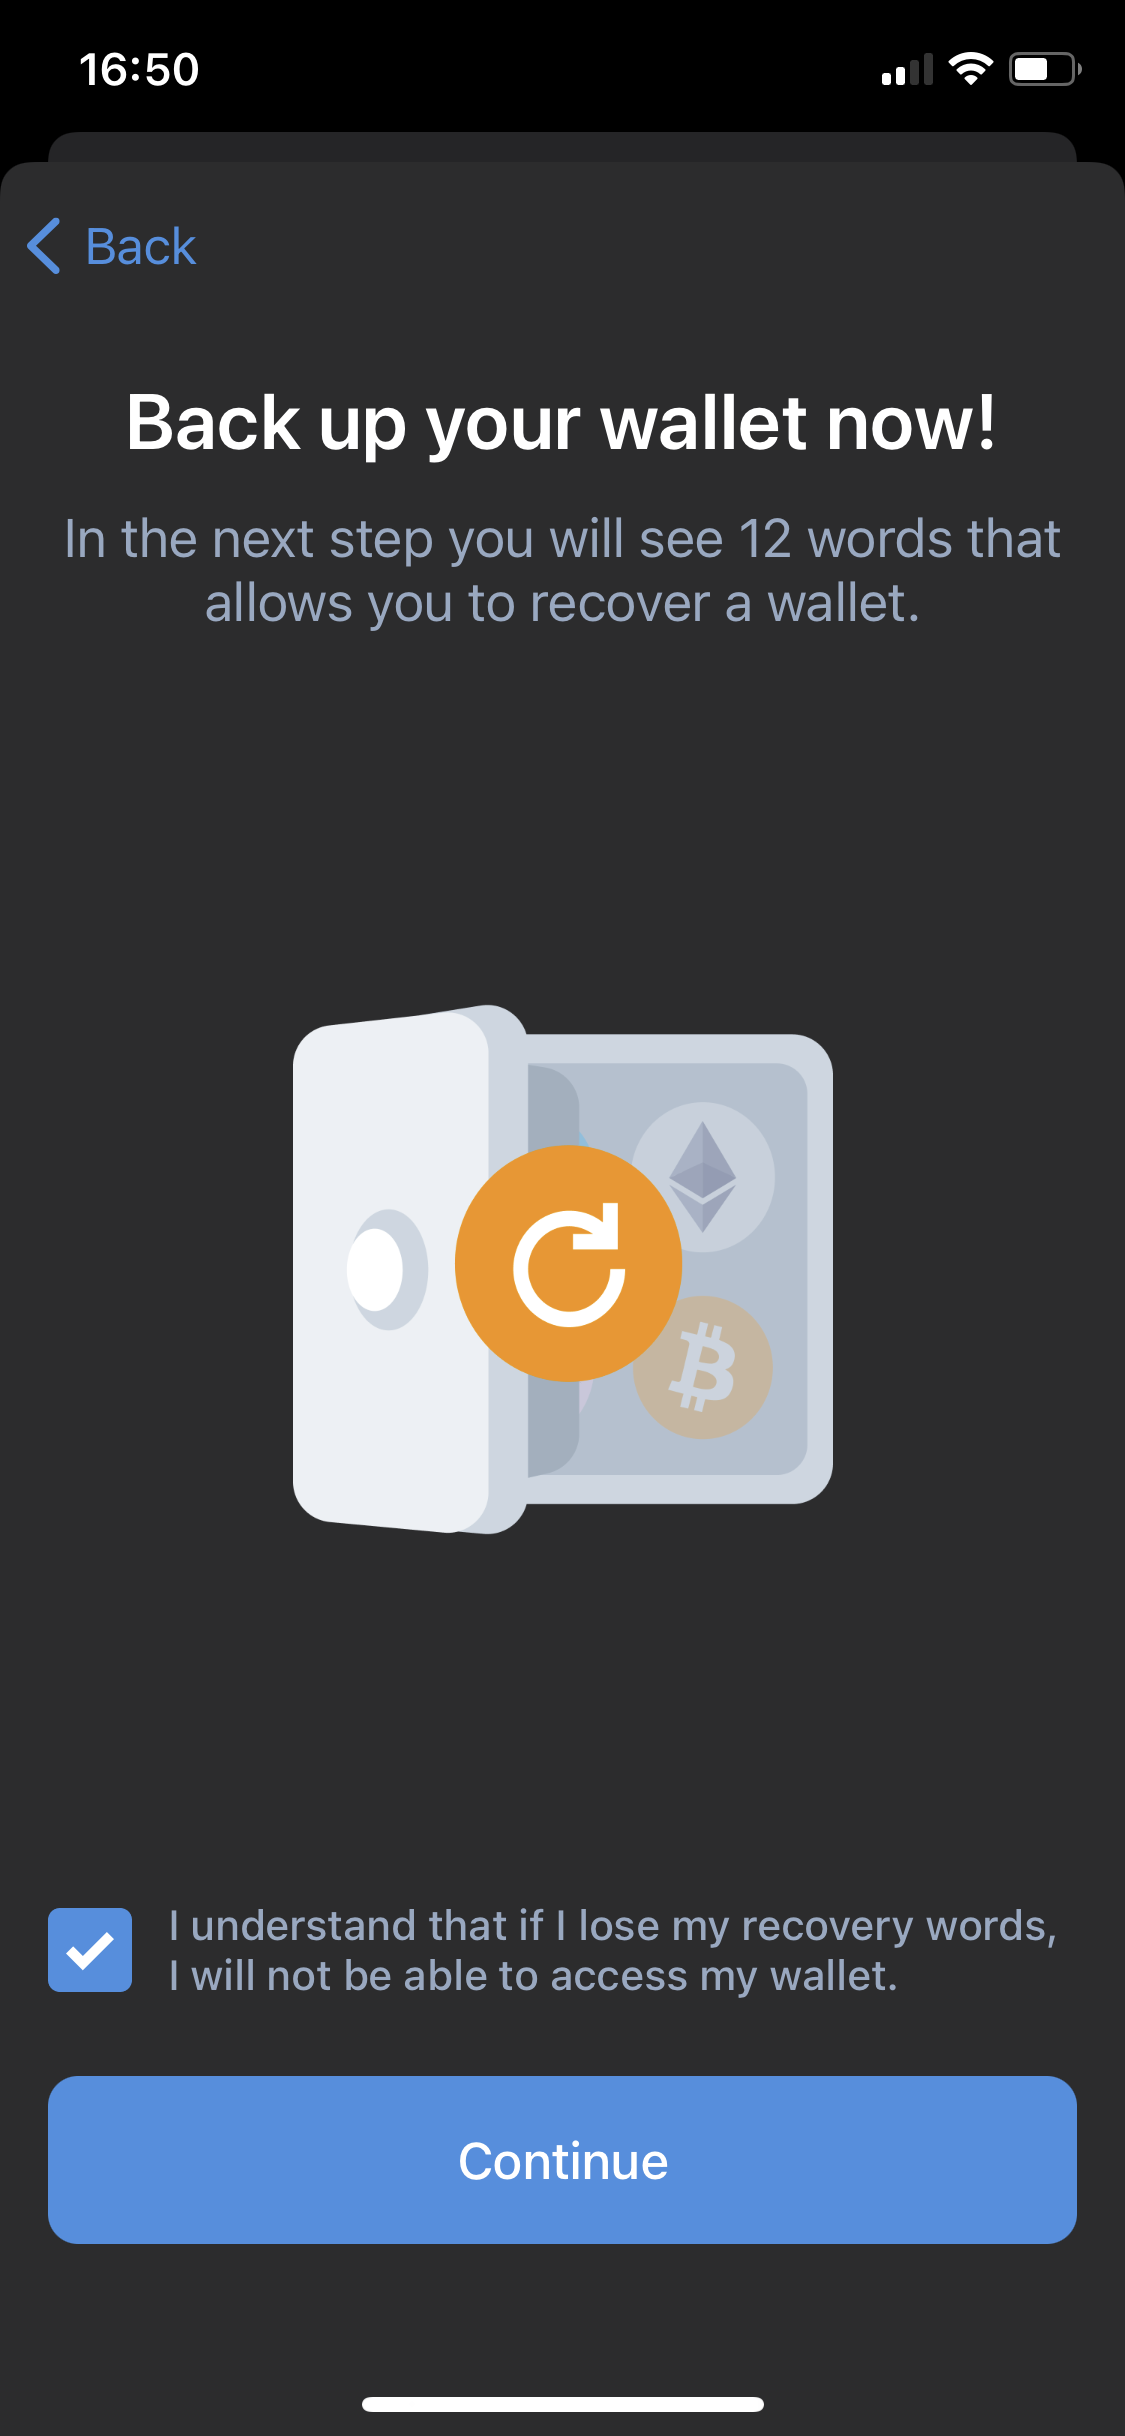 Install MetaMask for your browser